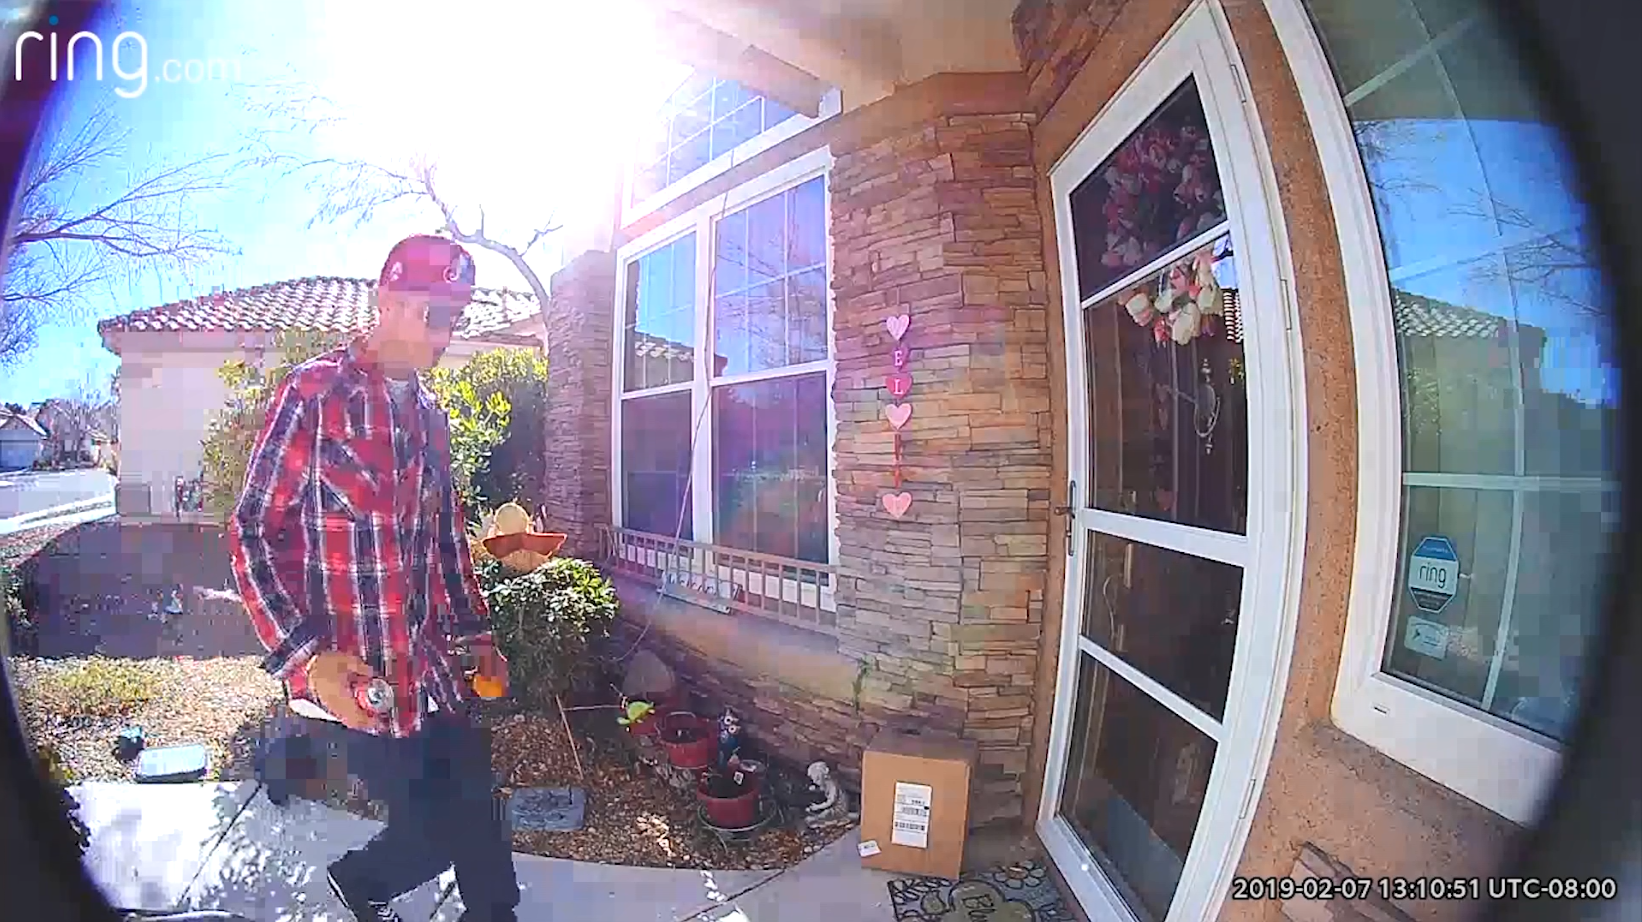 Nevada porch pirate steals 14-year-old boy's chemotherapy medicine (KLAS/CBS Newspath)